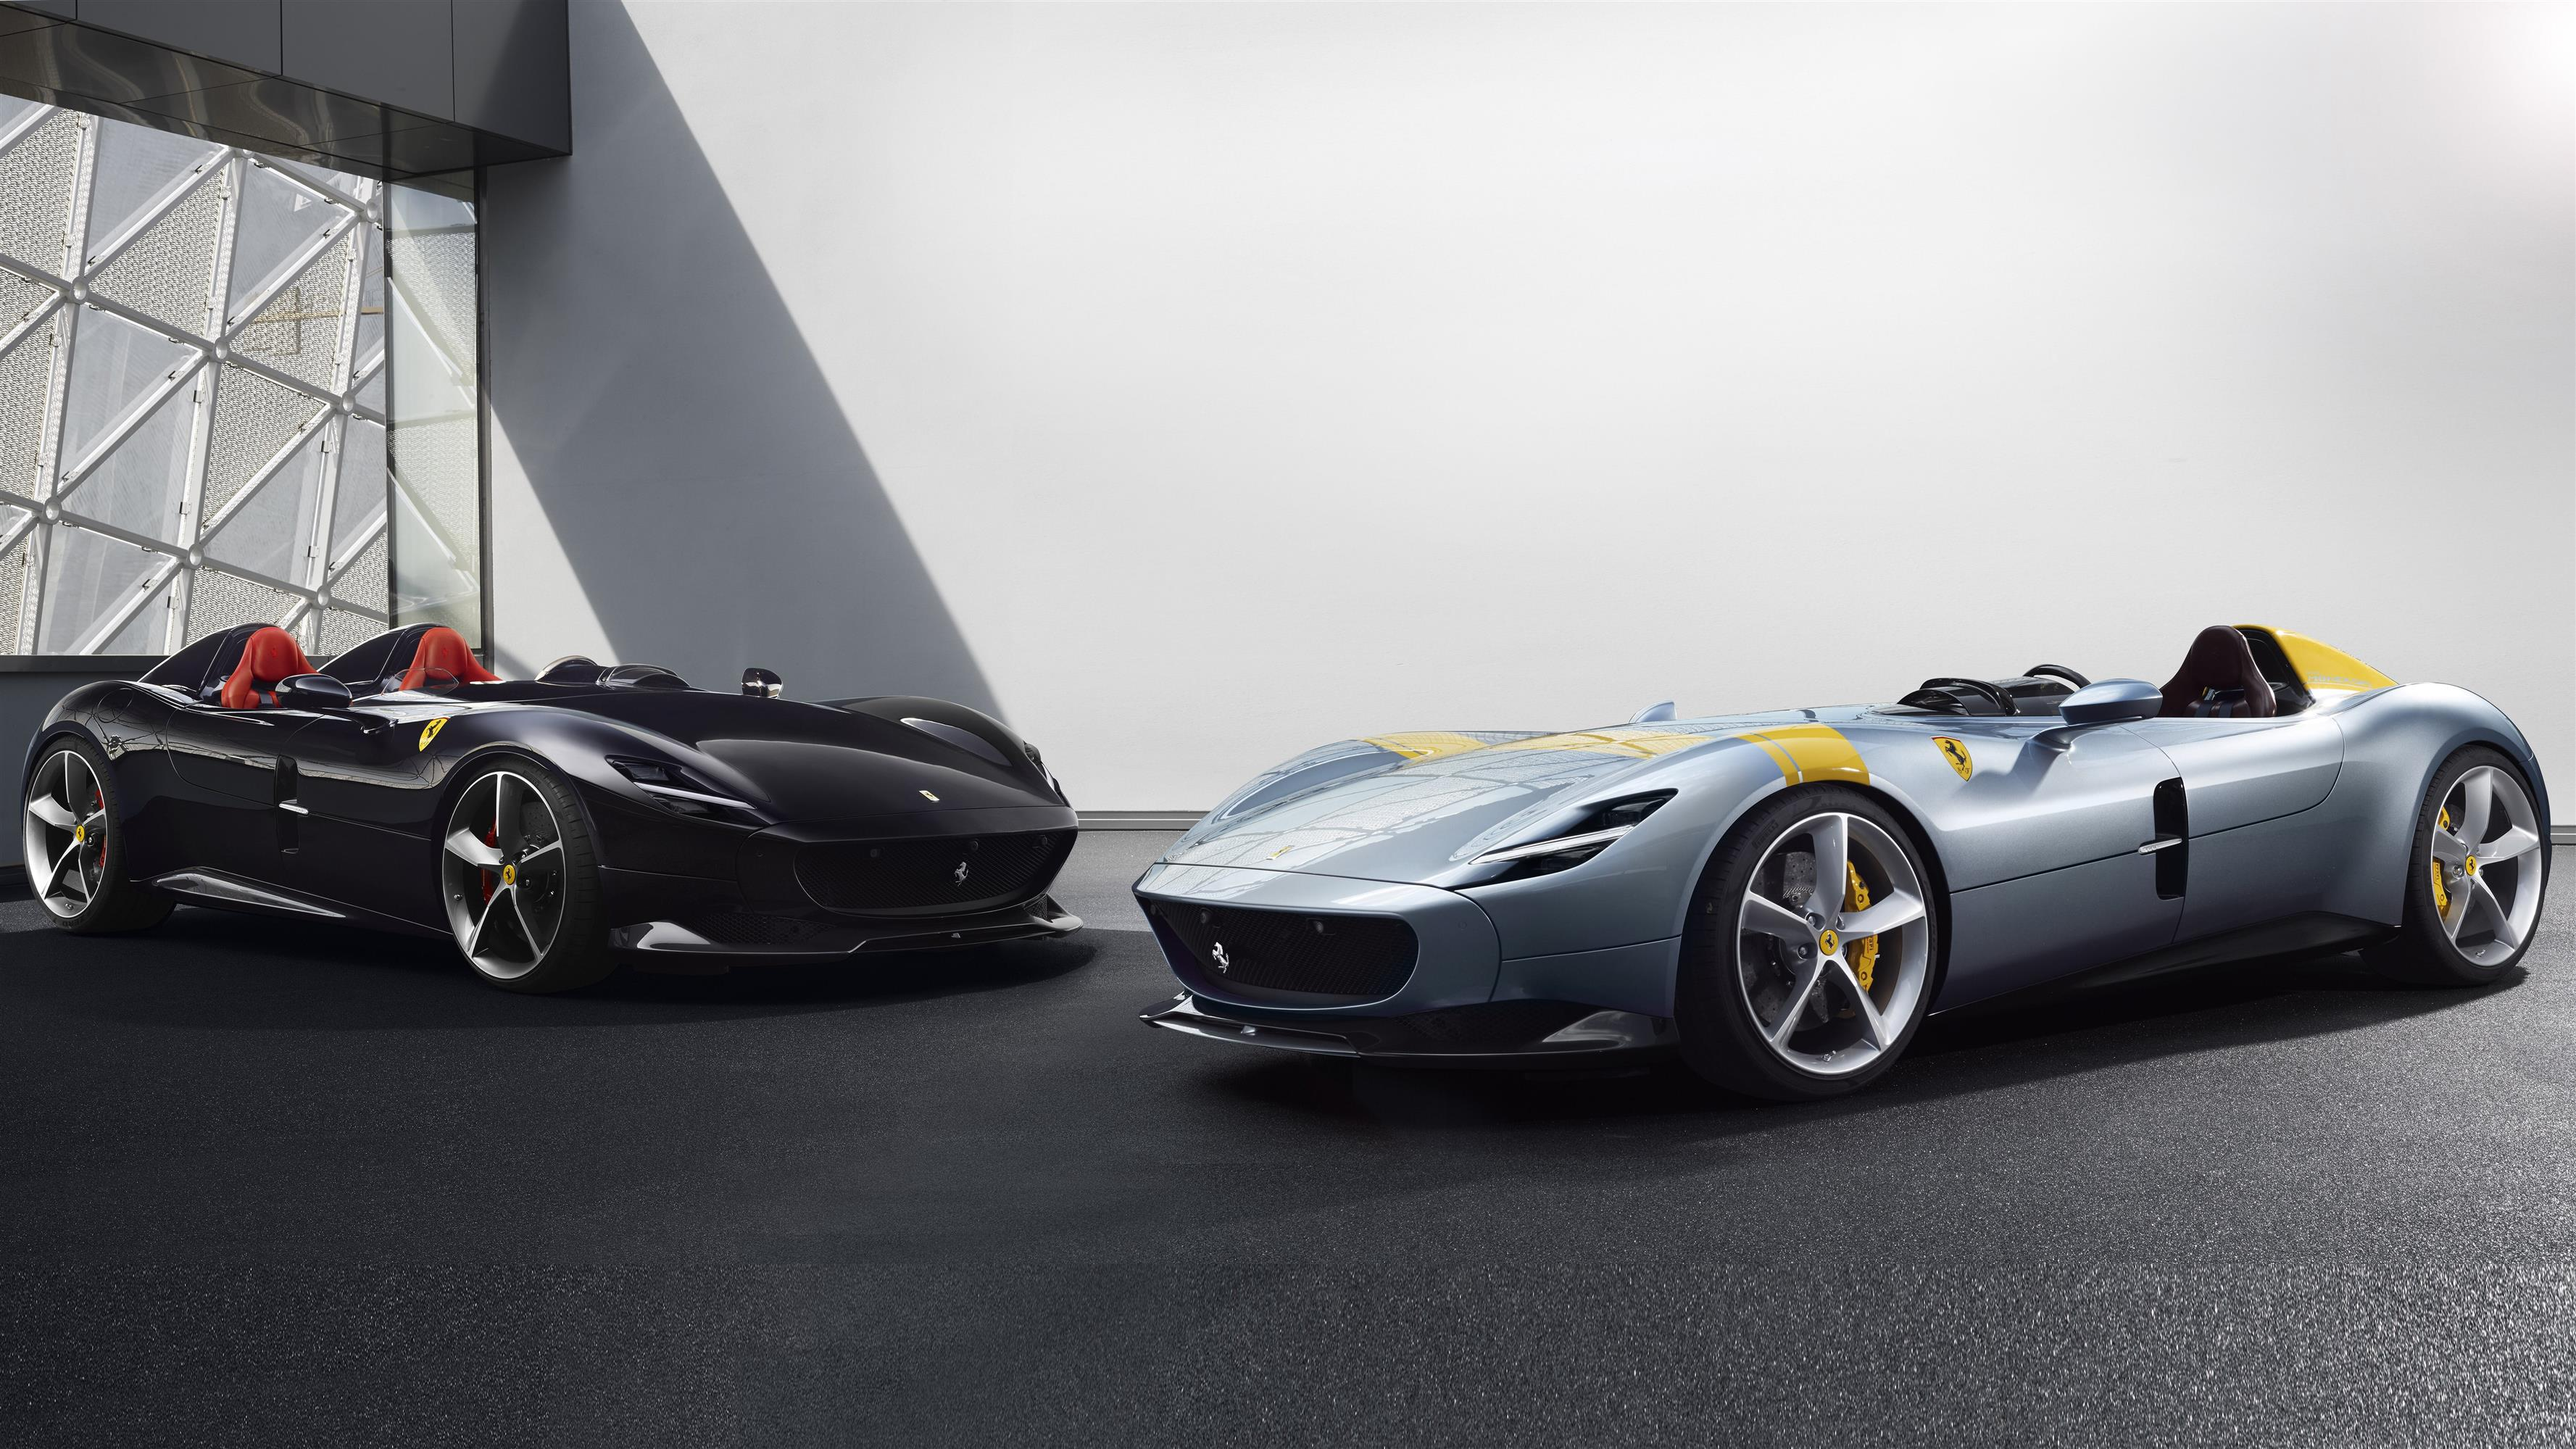 3554x1999 8K Wallpaper of Ferrari Monza SP2 Cars Model